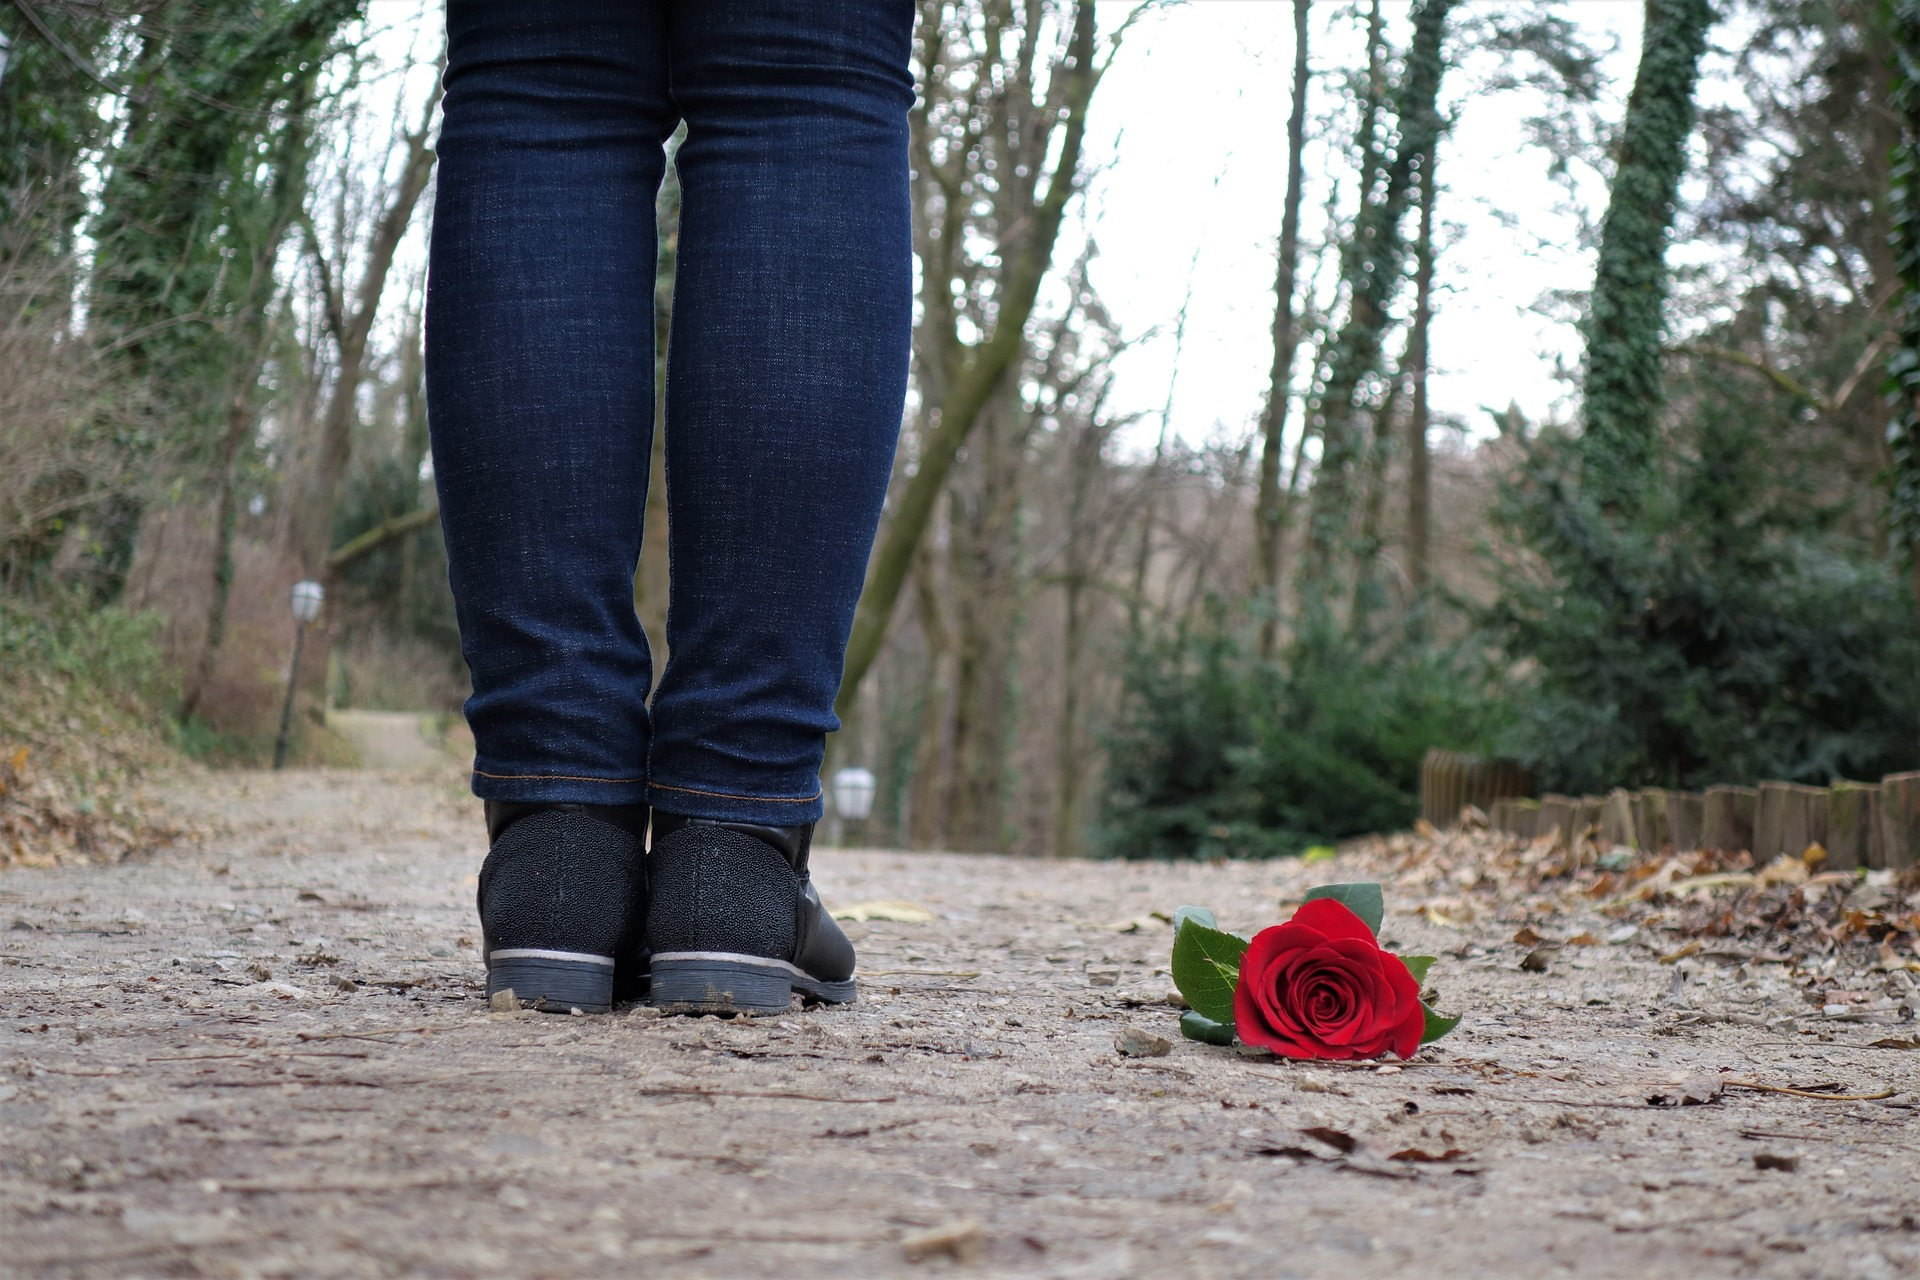 person standing on a road with a rose on the ground next to her feet